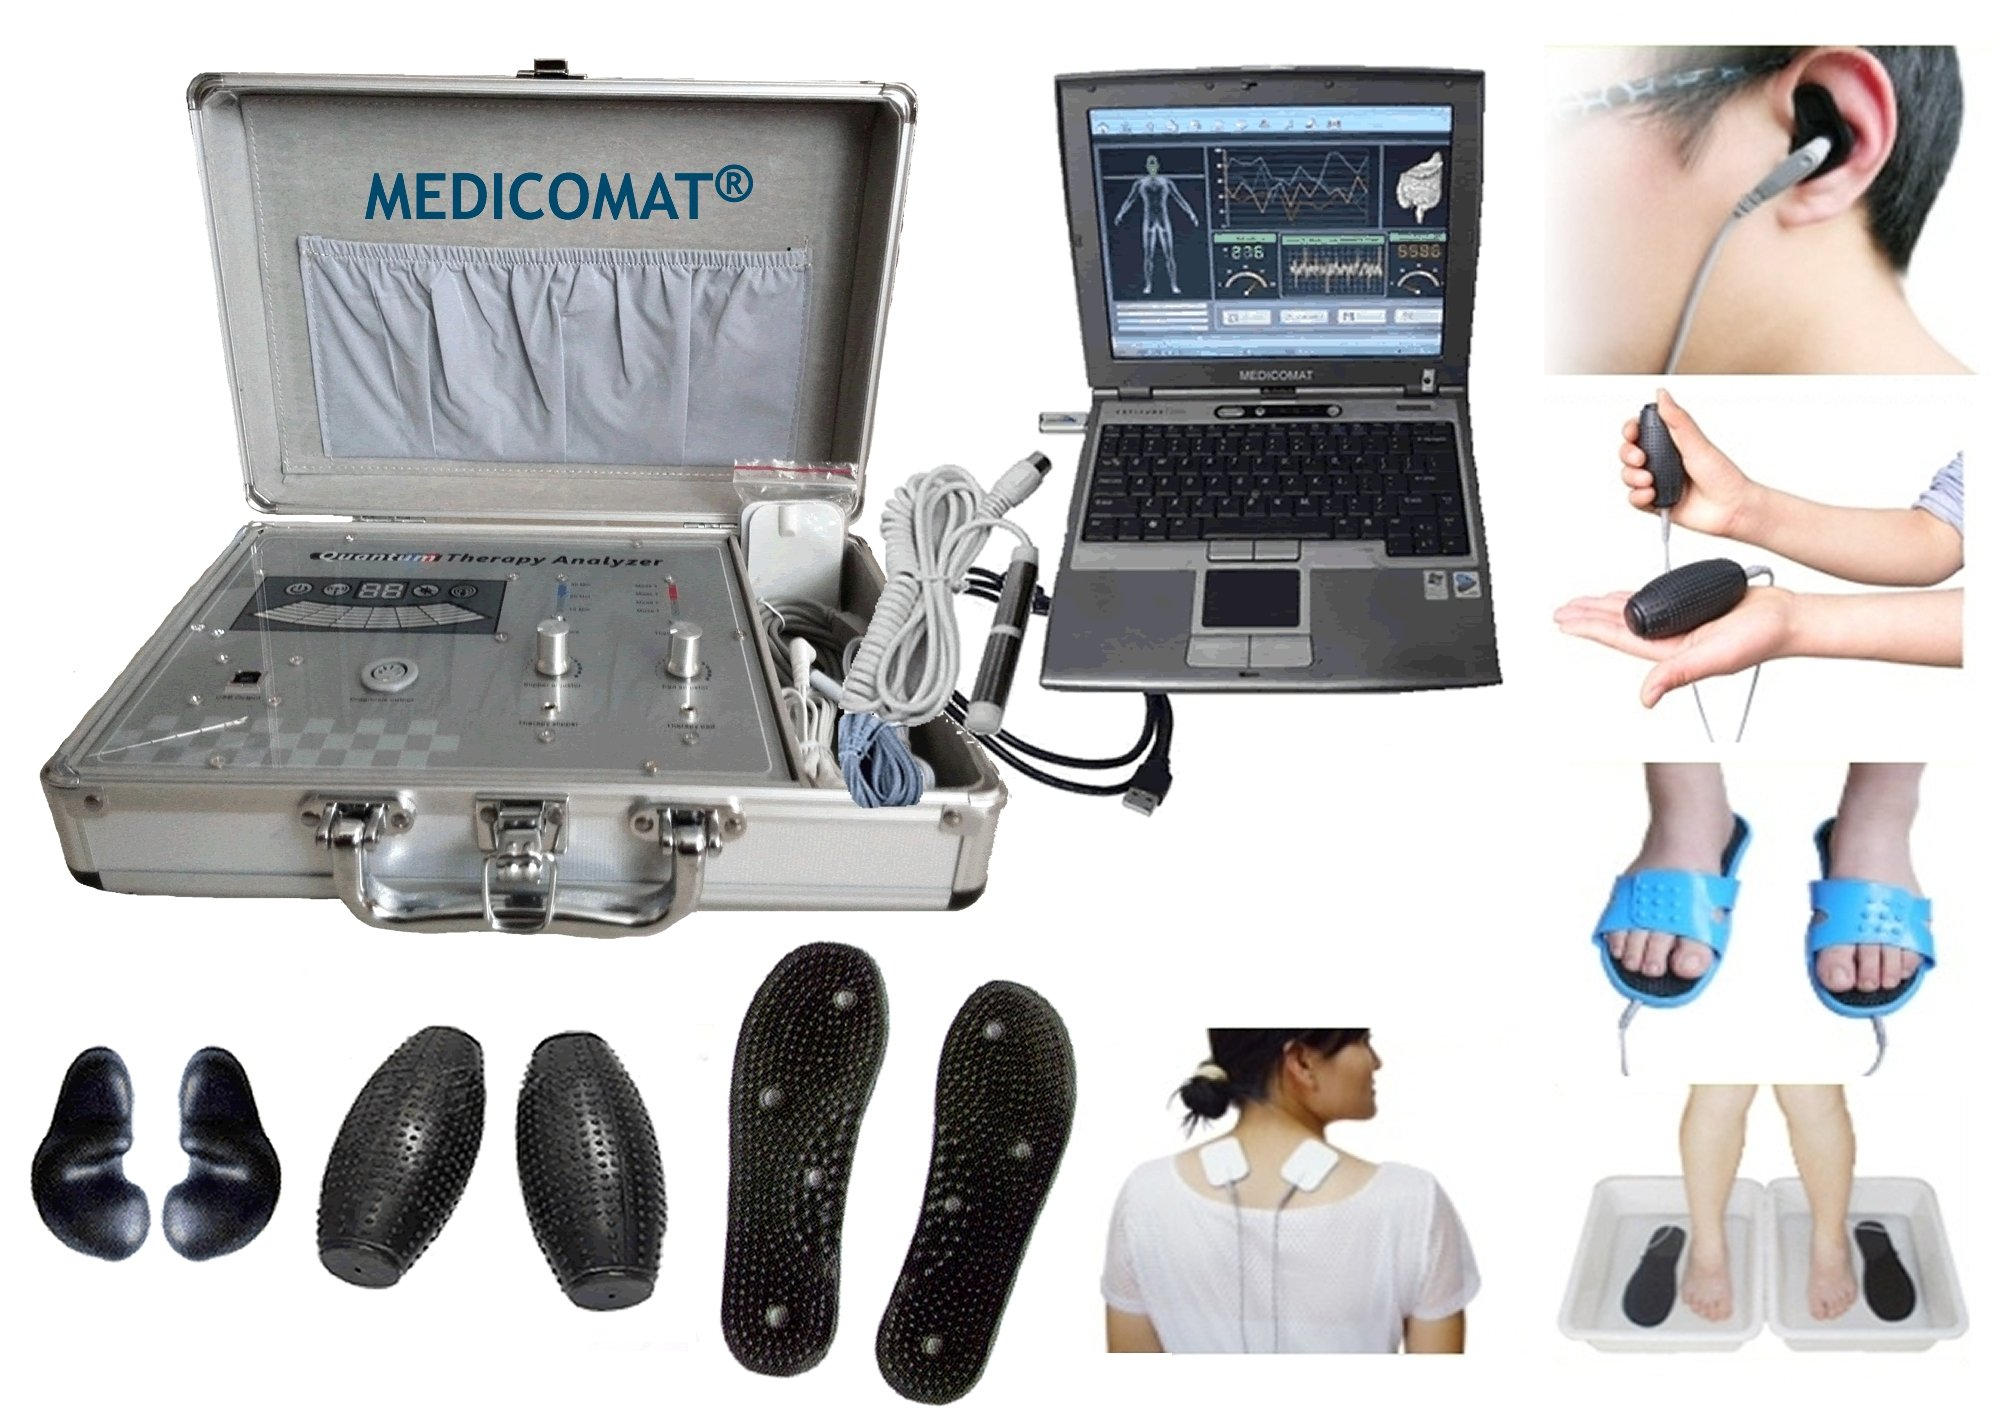 Healthy Living at Home Medicomat-291 Quantum Healthy Computer Therapy Analyzer System